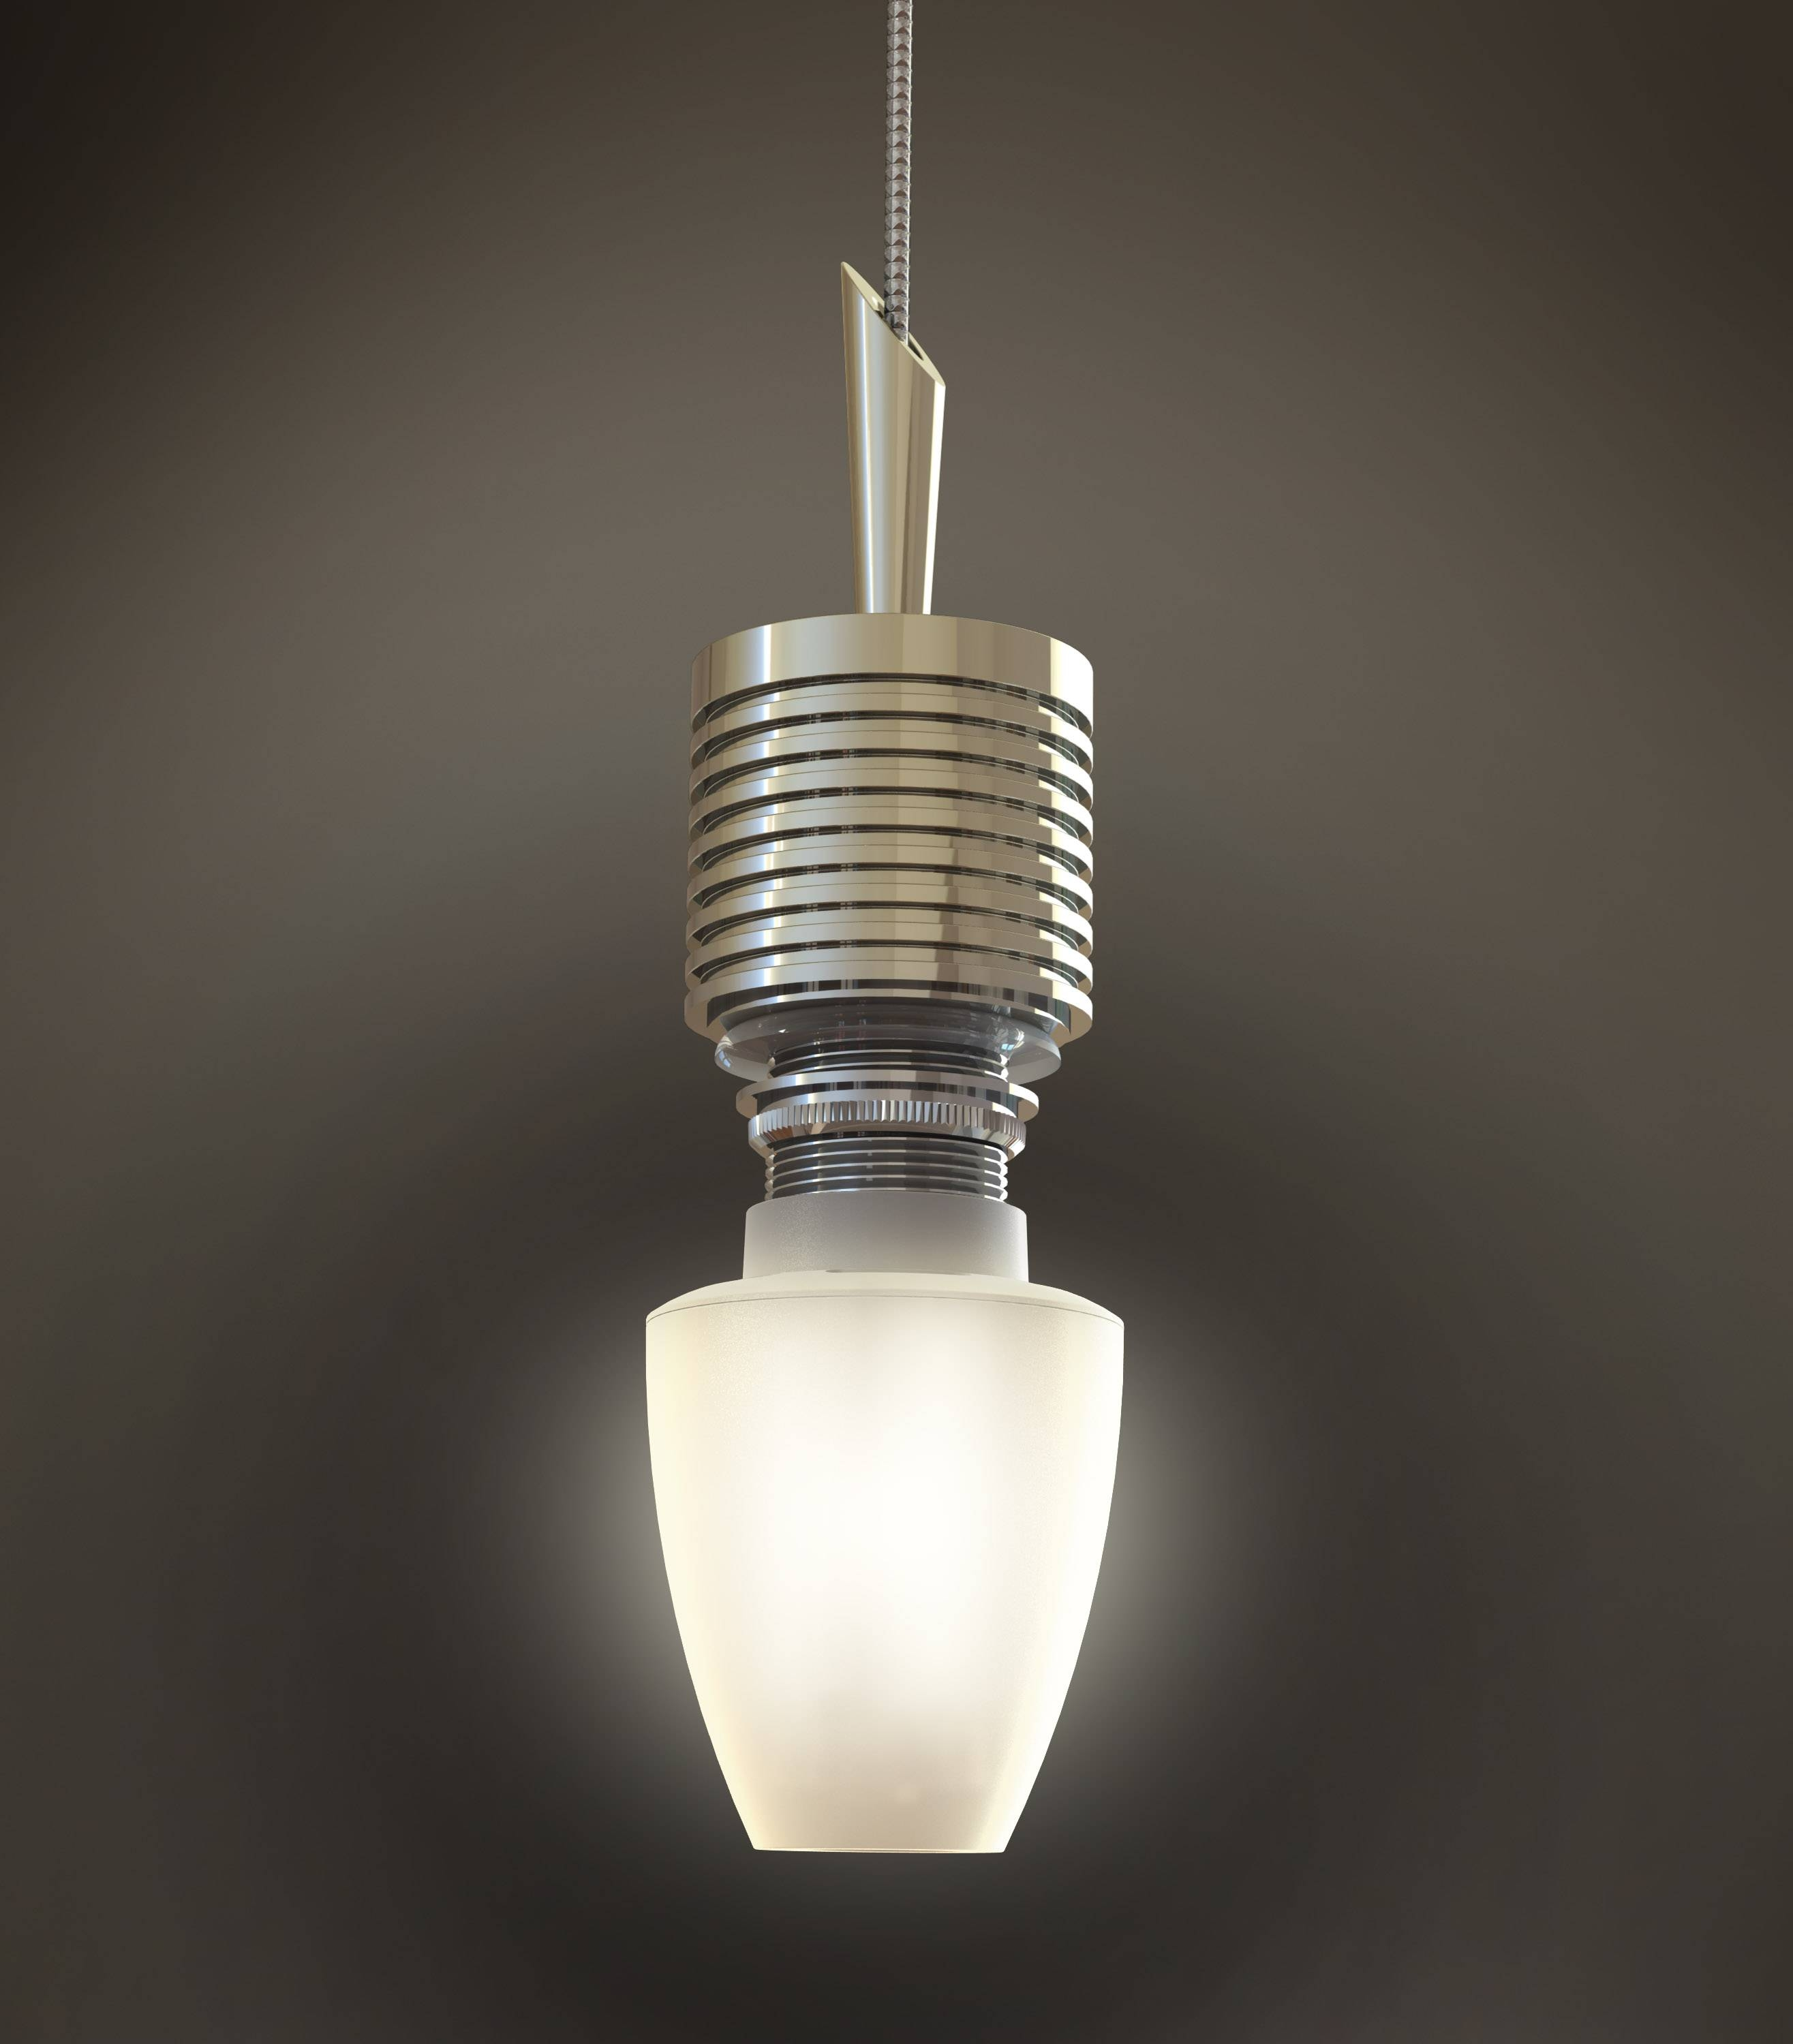 Industrial Pendant Lighting Canada | Roselawnlutheran Pertaining To Industrial Pendant Lighting Canada (View 6 of 15)